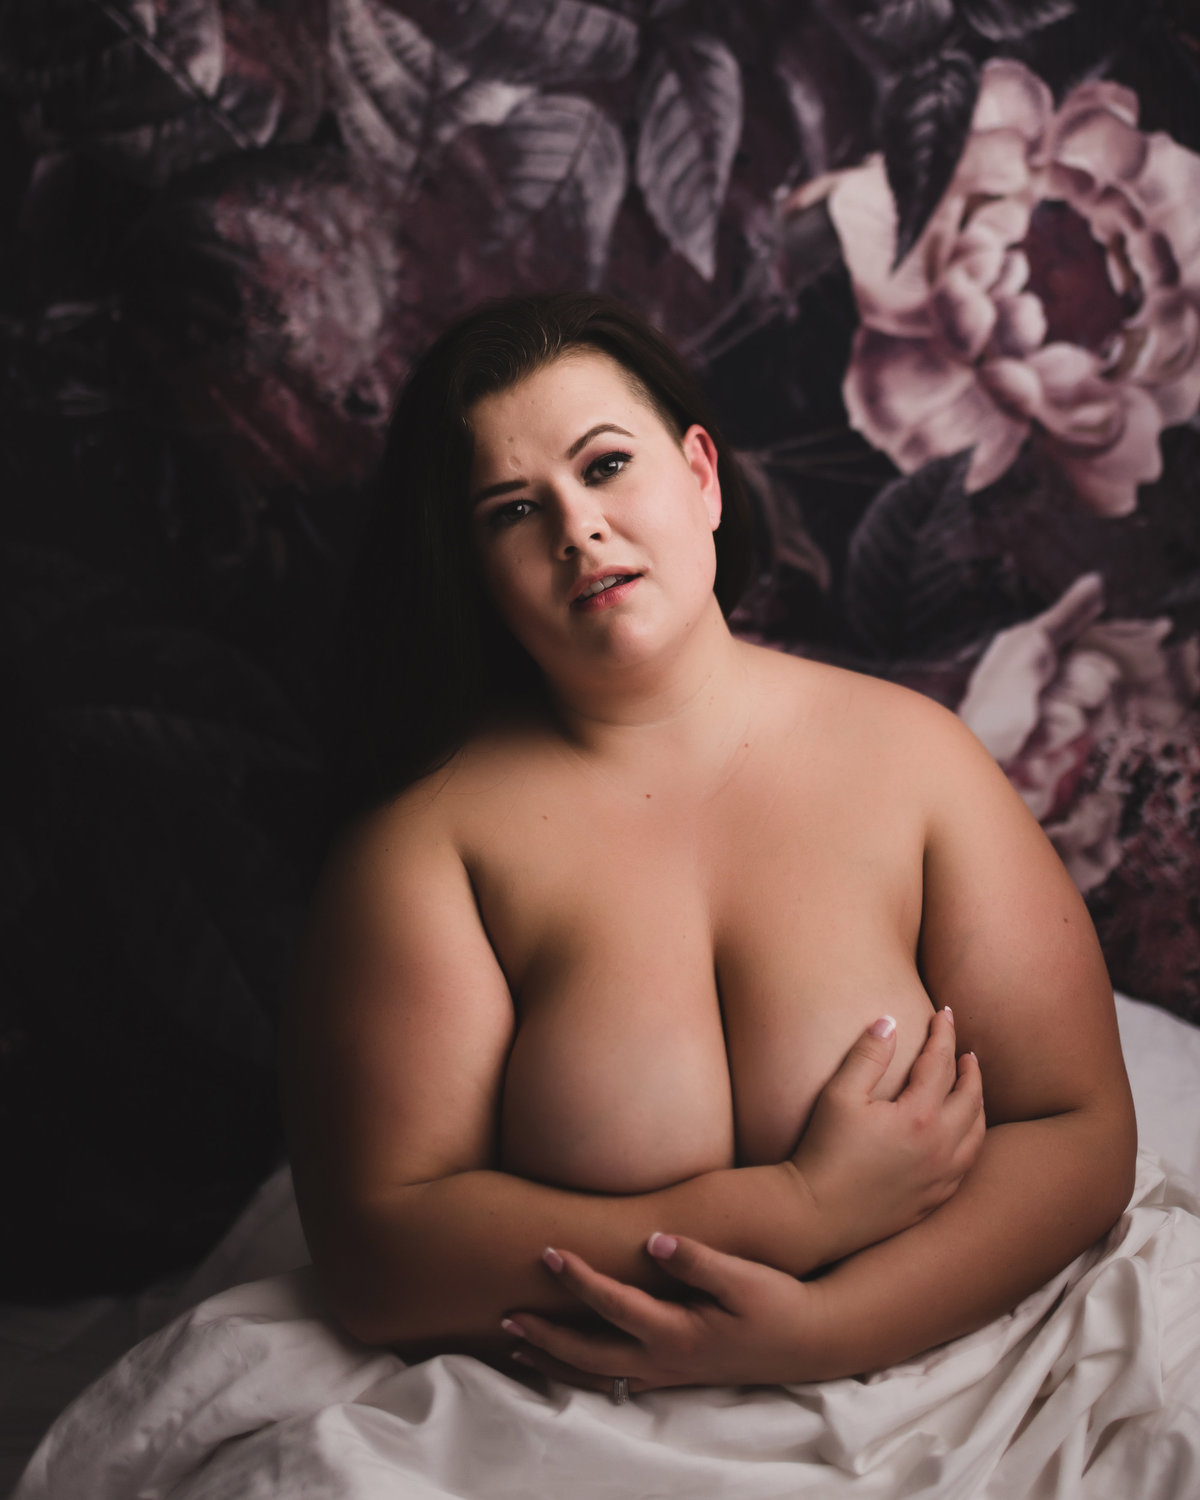 erika-gayle-photography-regina-boudoir-intimate-portrait-photographer-22